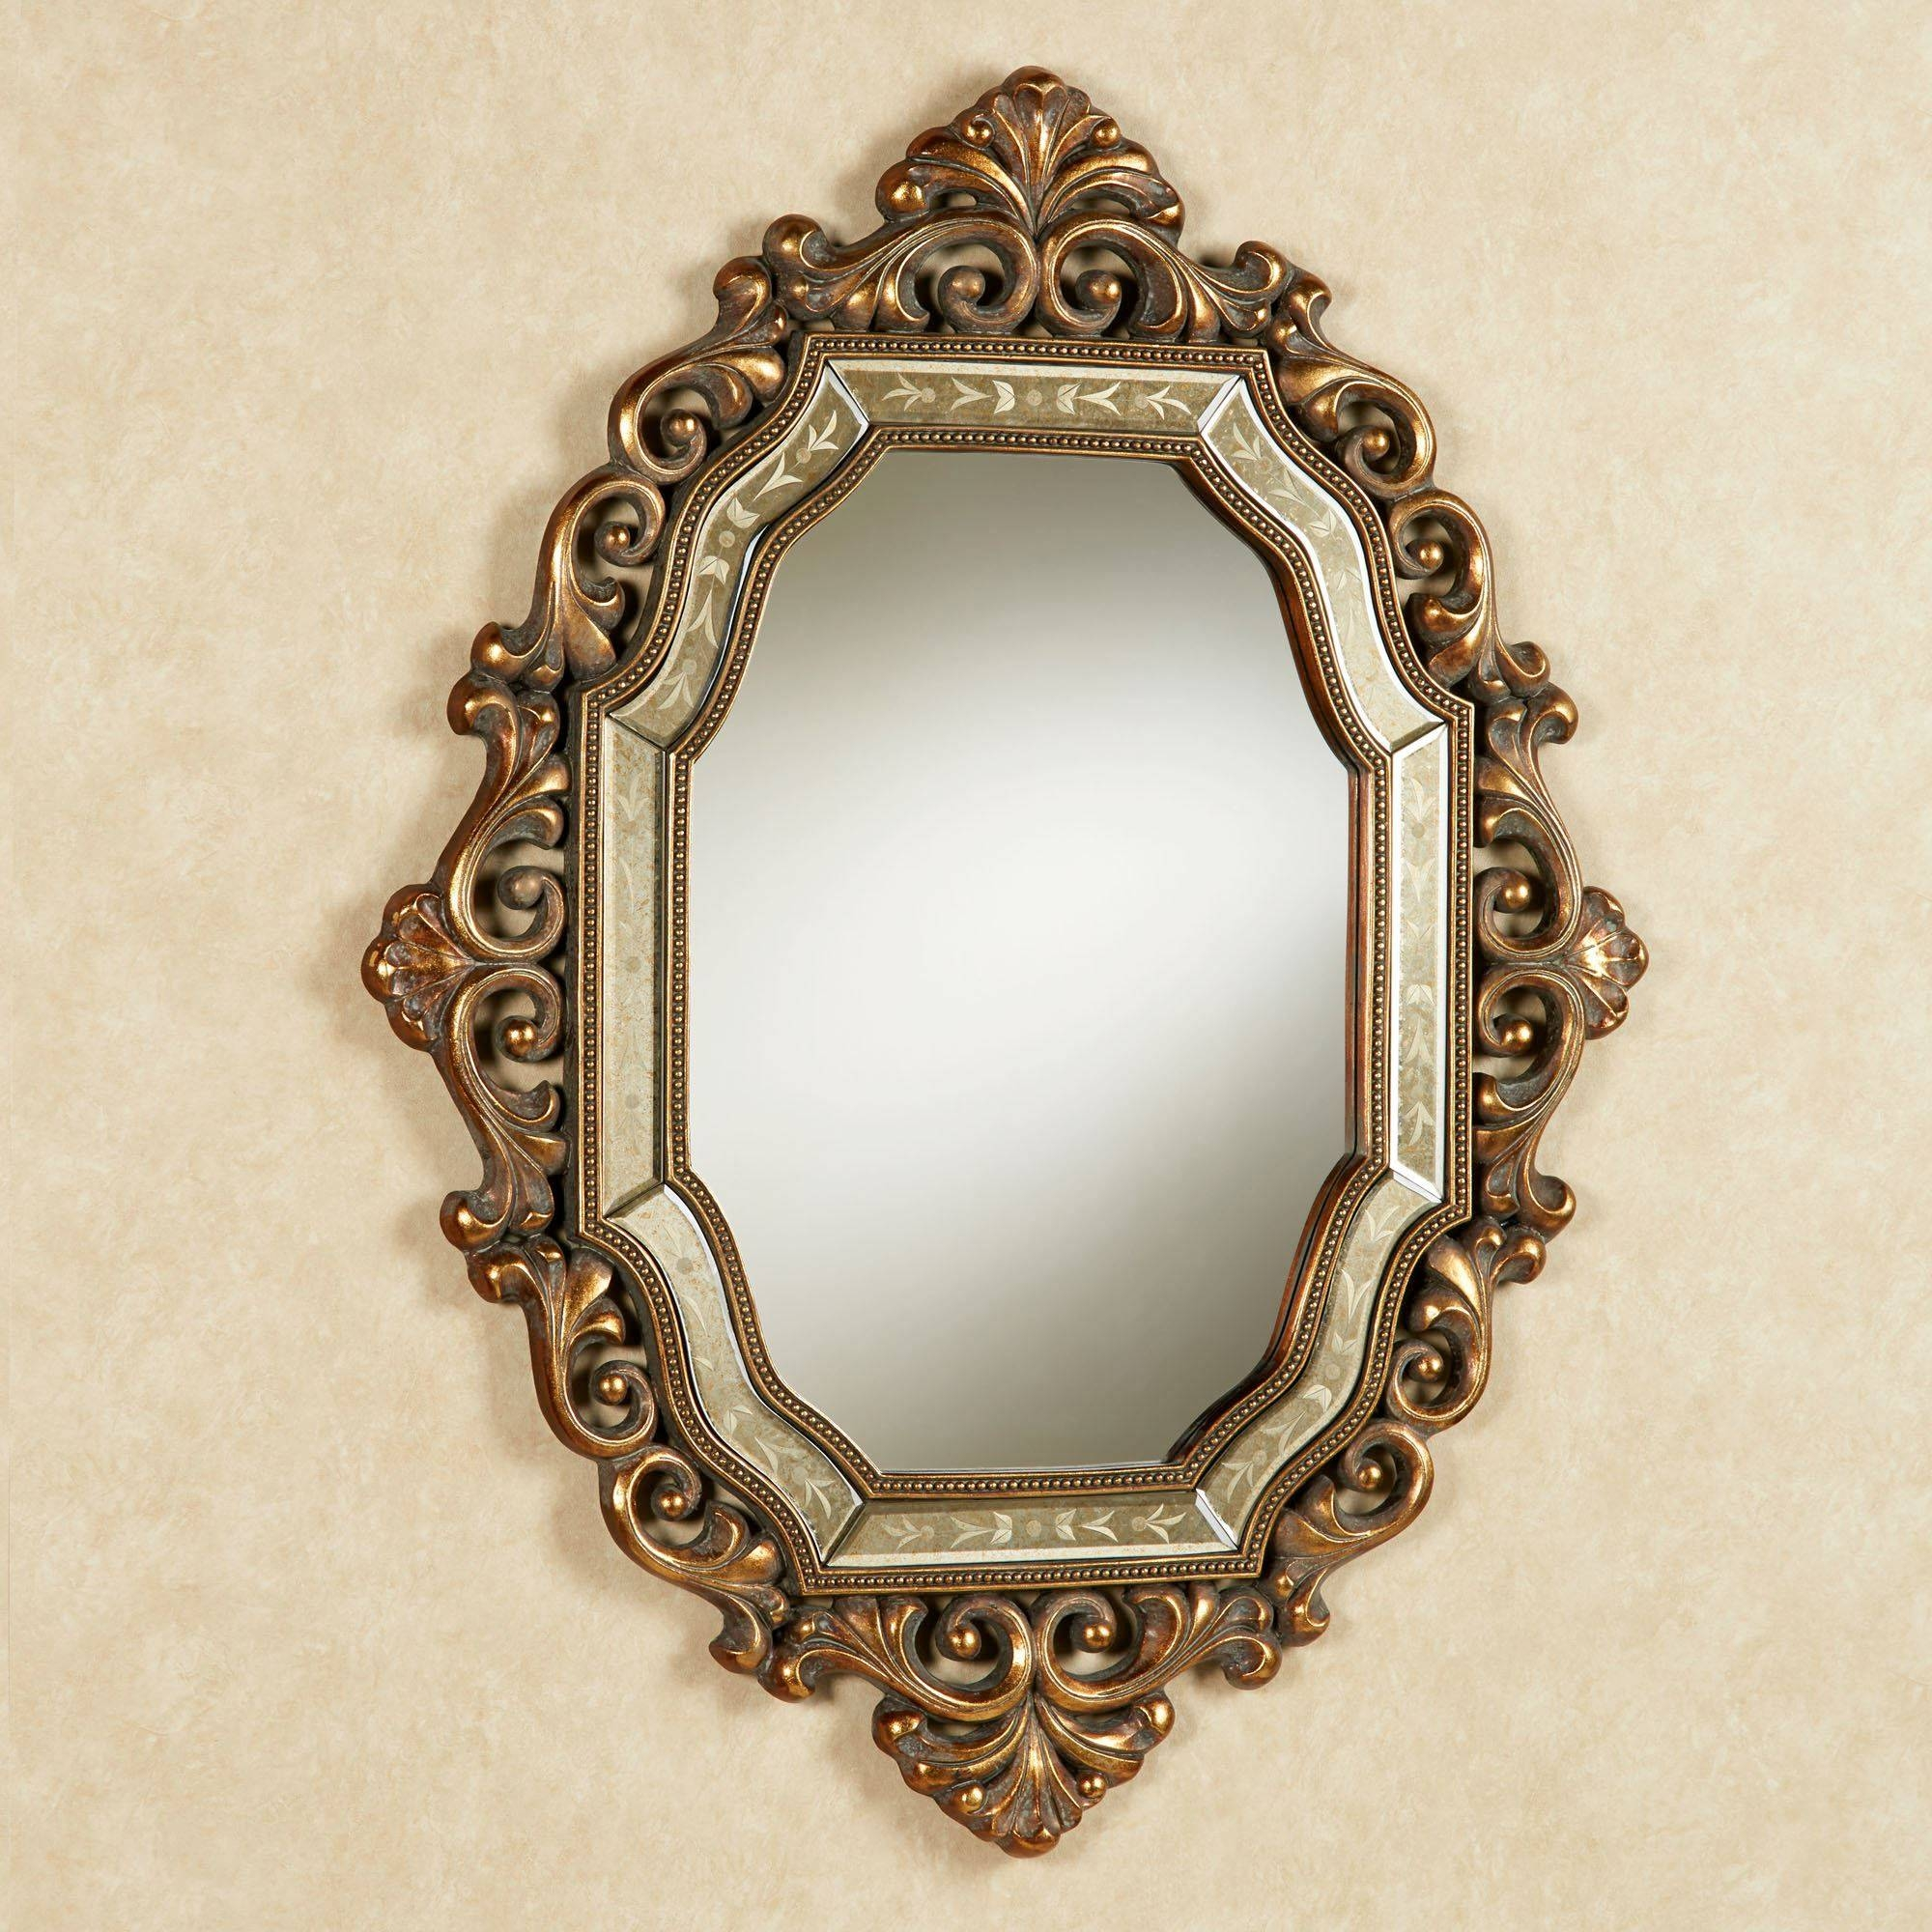 Verena Old World Wall Mirror with regard to Antique Gold Mirrors (Image 25 of 25)